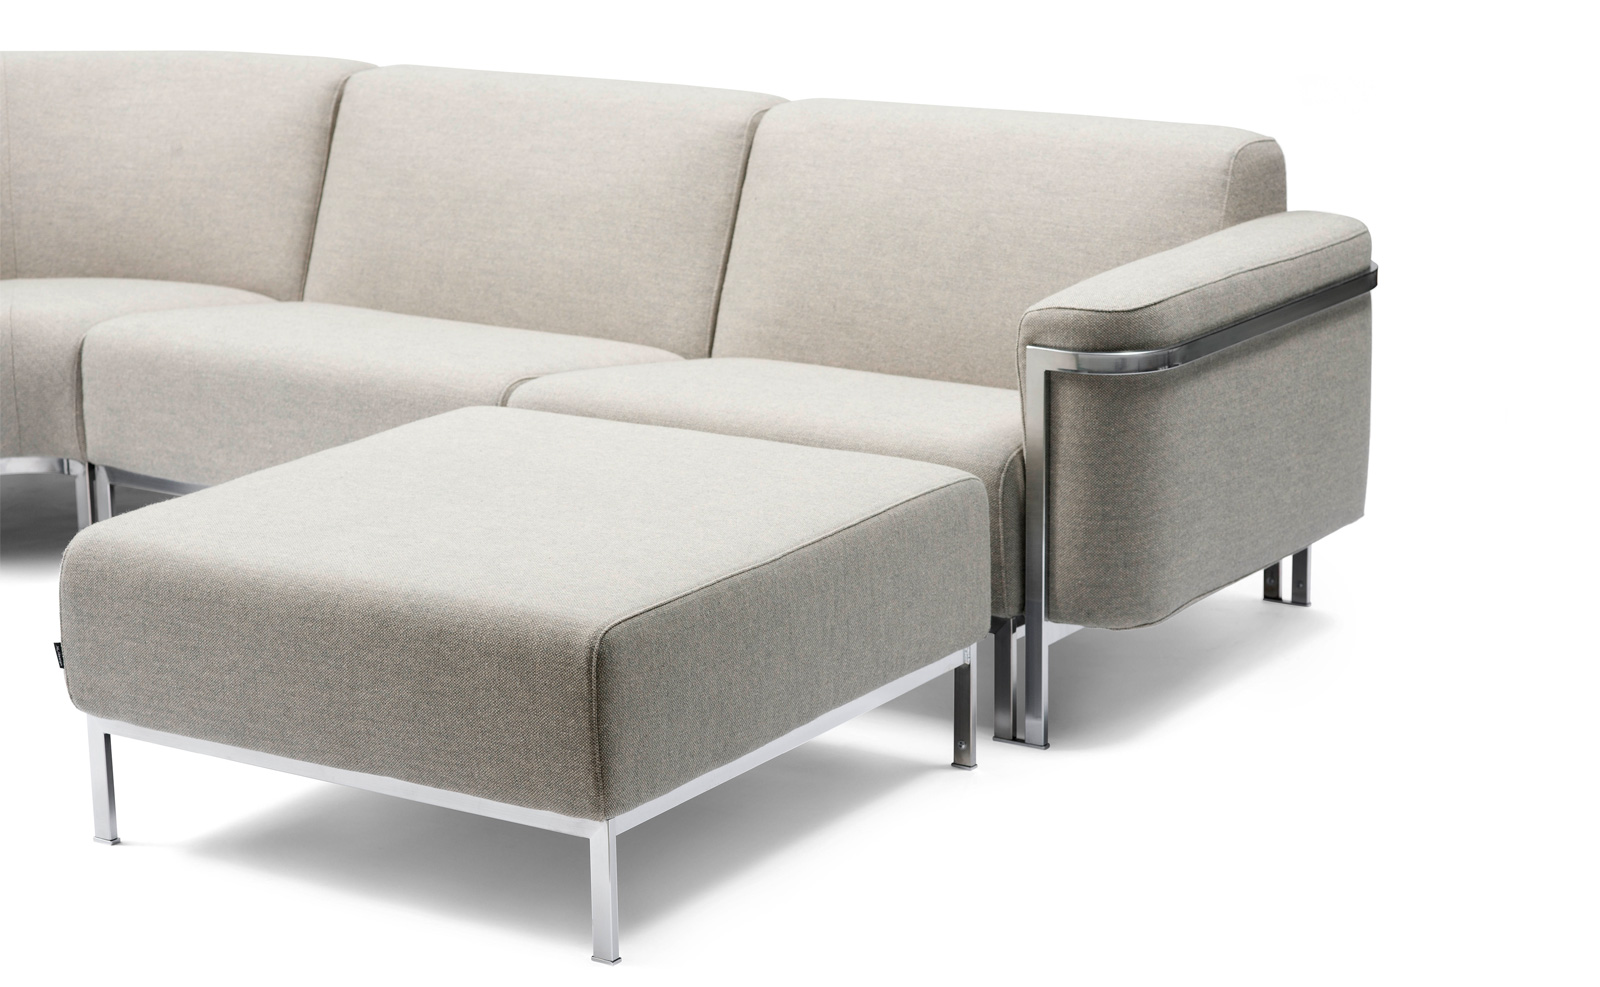 Ikea Hocker Zum Sofa Couch Hocker Sofa Couch Hocker Polster Sessel Couch With